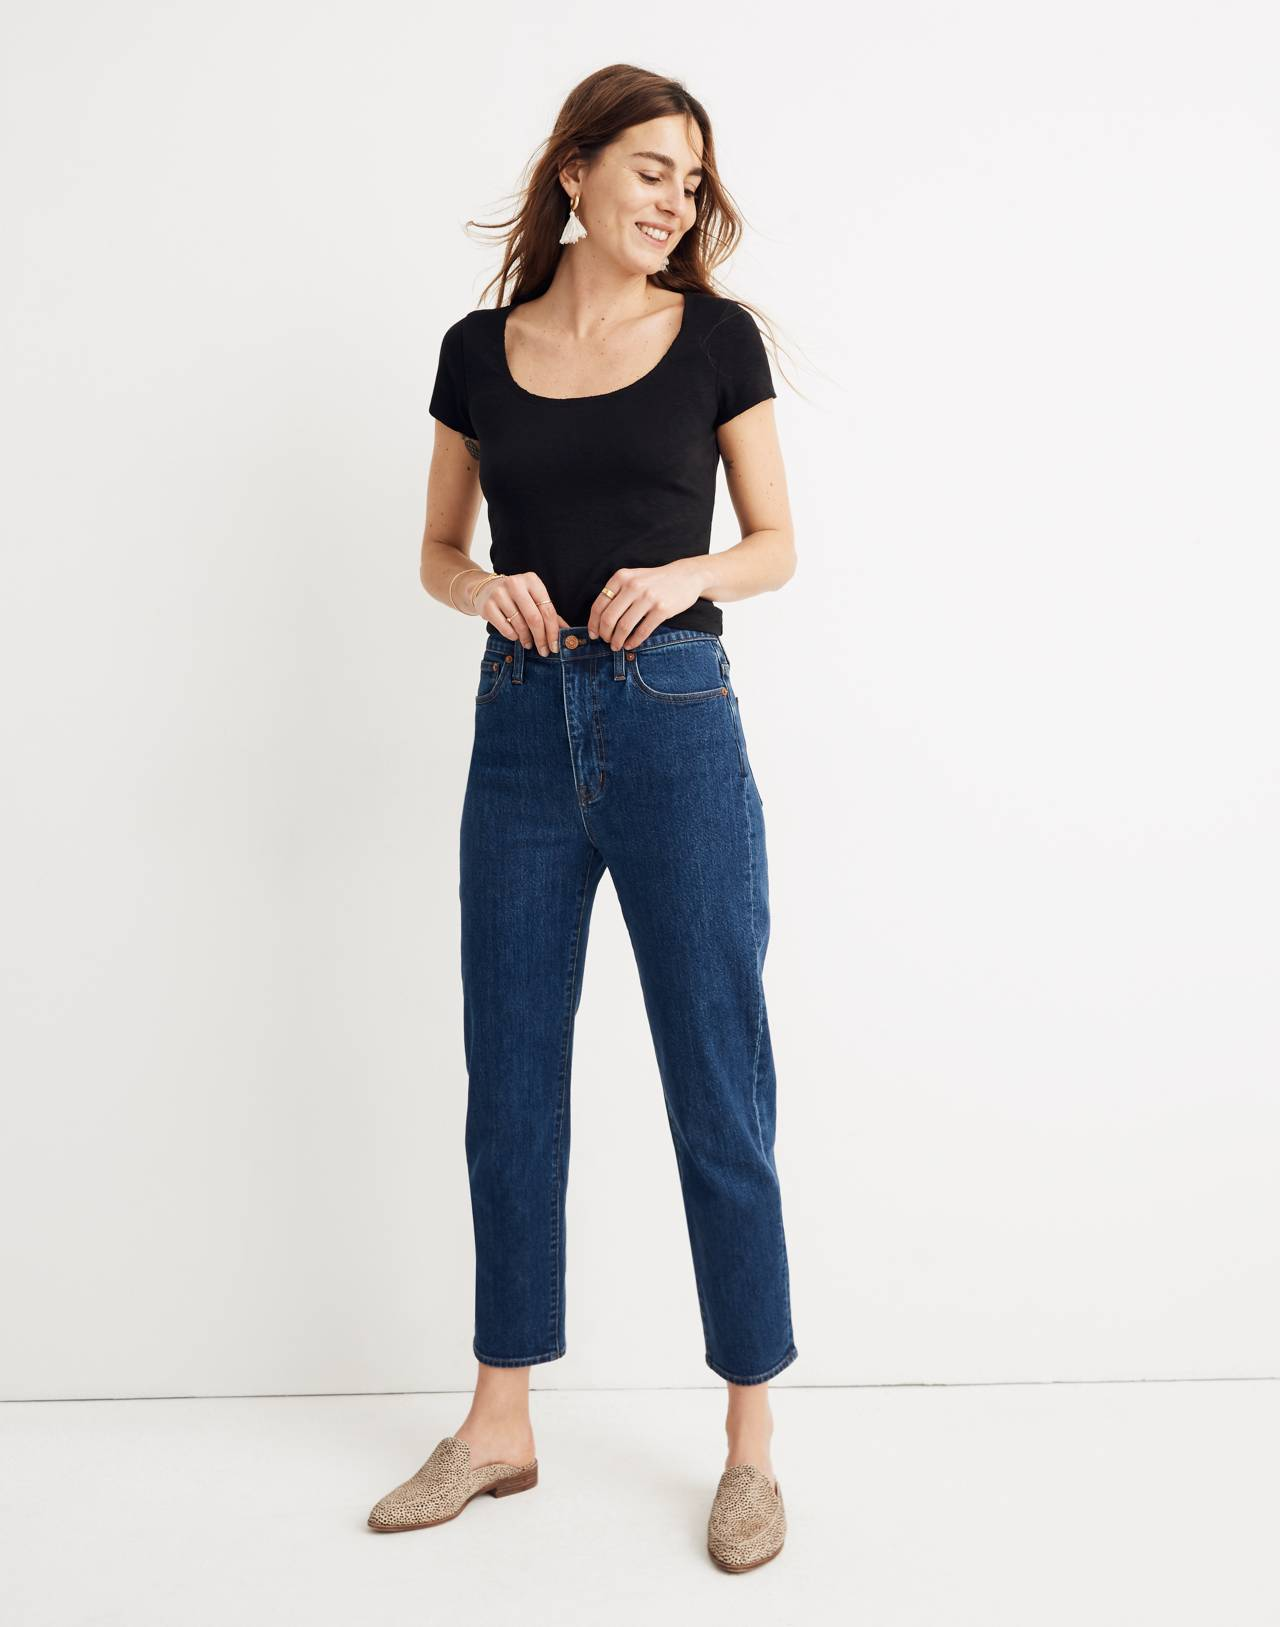 Tapered Jeans in Bellclaire Wash in belclaire wash image 2